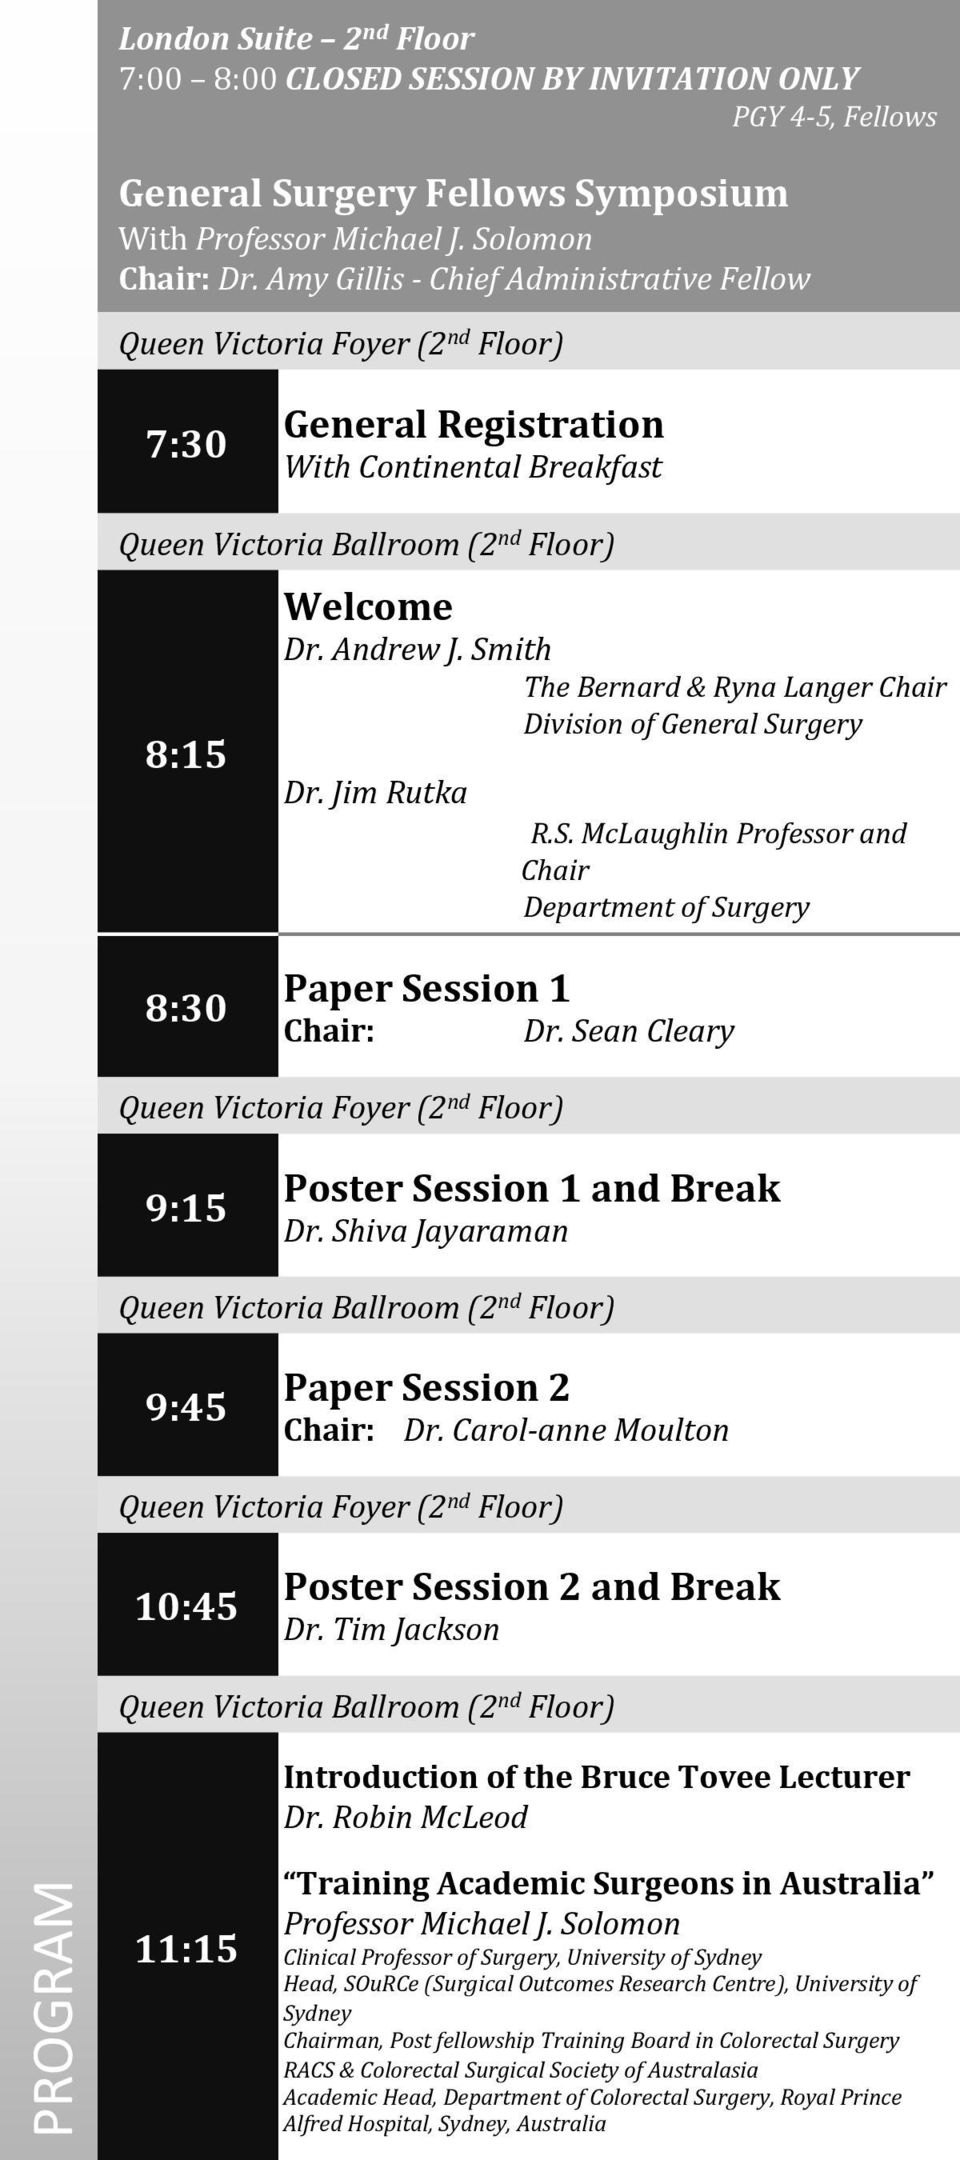 Smith The Bernard & Ryna Langer Chair Division of General Surgery Dr. Jim Rutka R.S. McLaughlin Professor and Chair Department of Surgery 8:30 Paper Session 1 Chair: Dr.